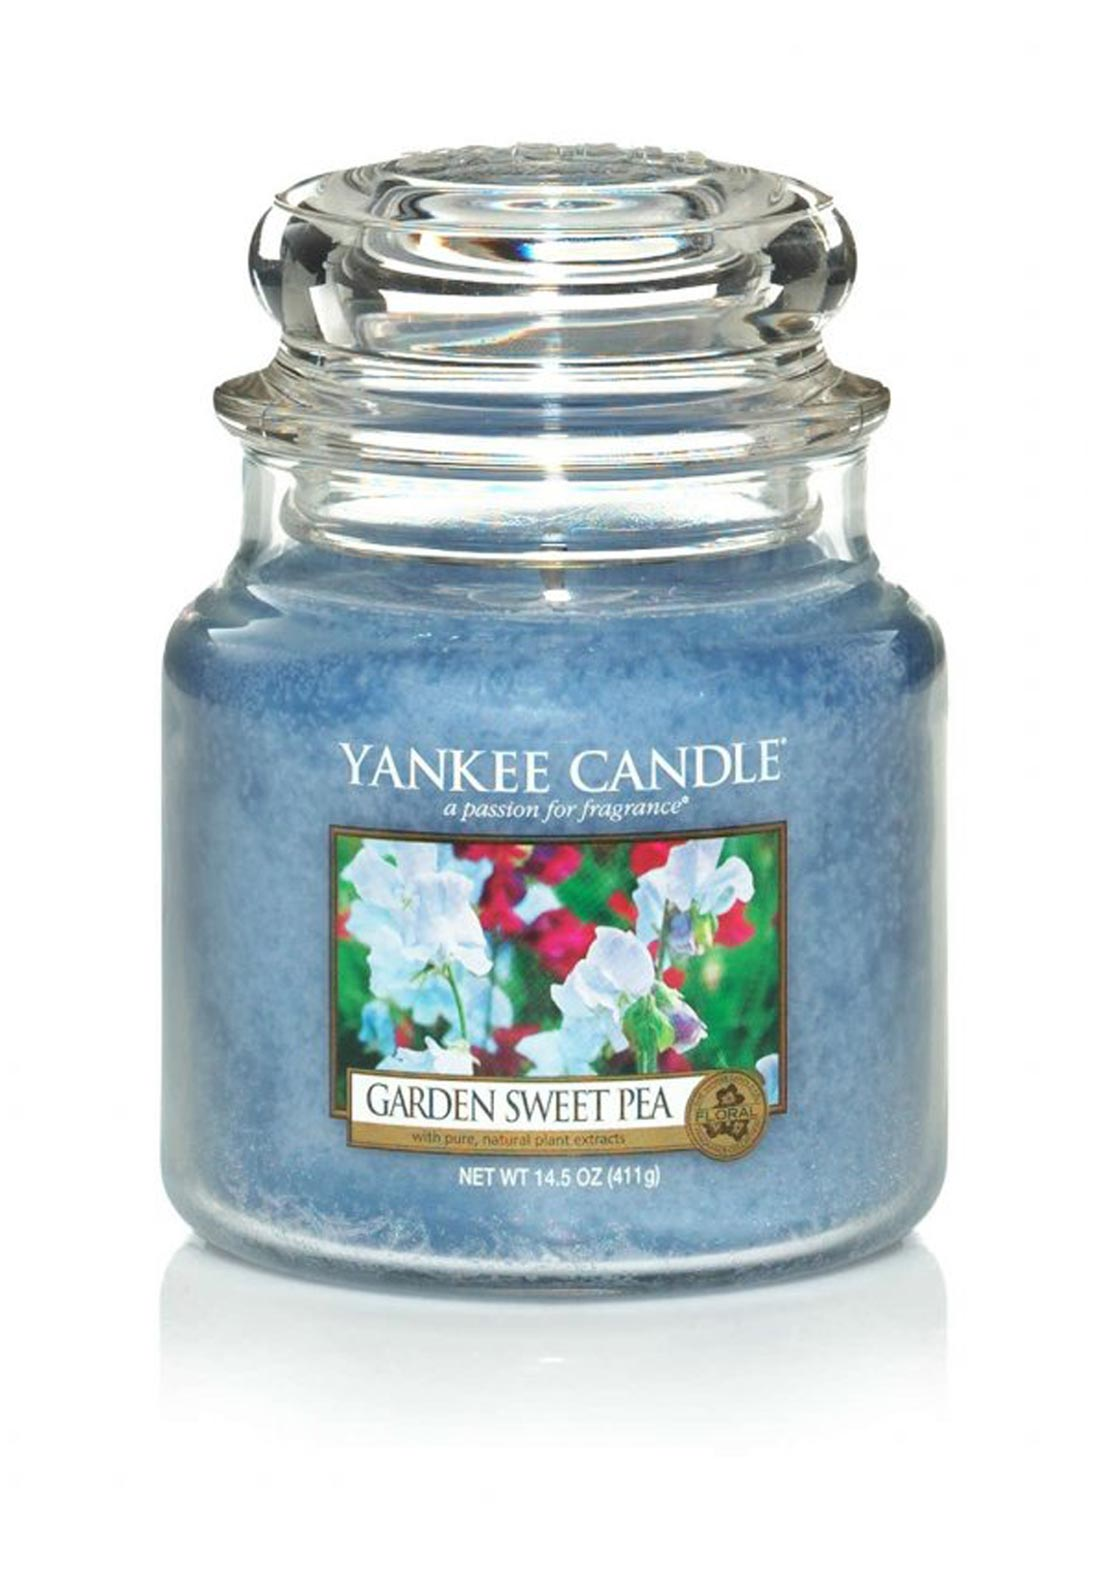 Yankee Candle Medium Classic Jar, Garden Sweet Pea